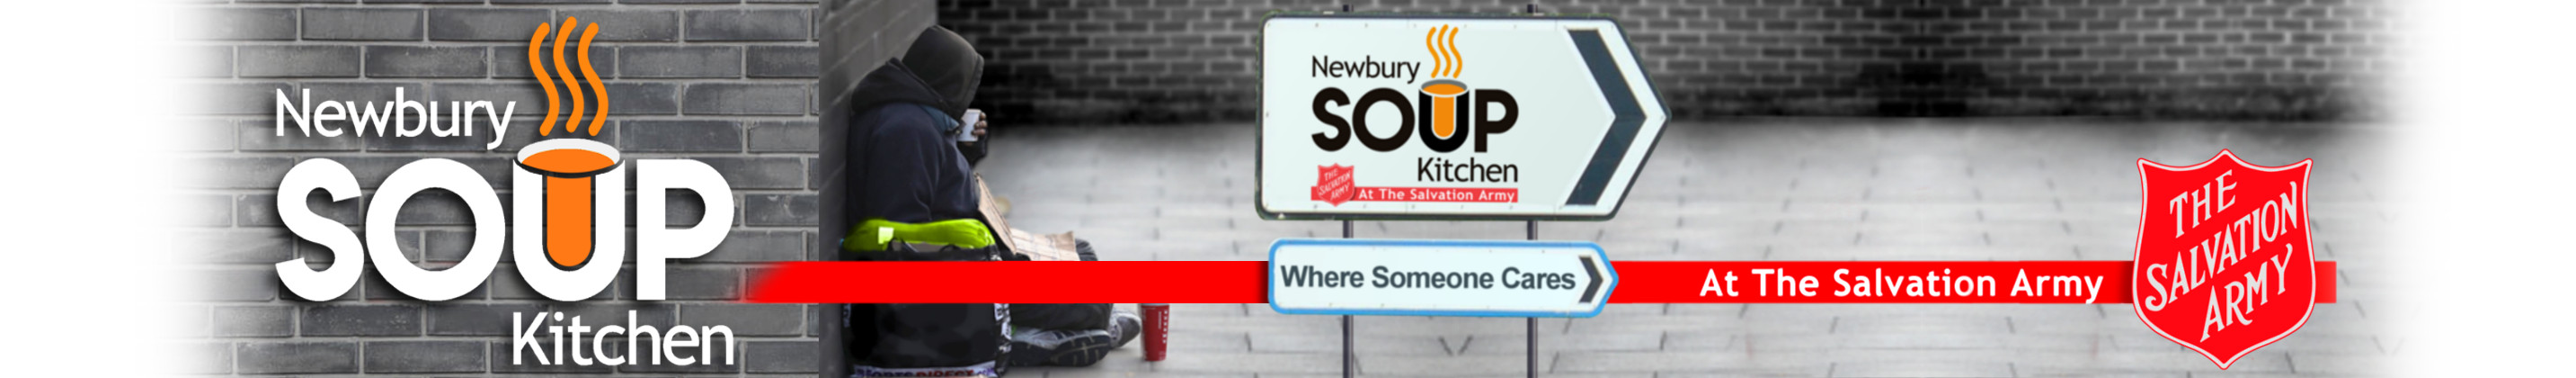 Newbury Soup Kitchen